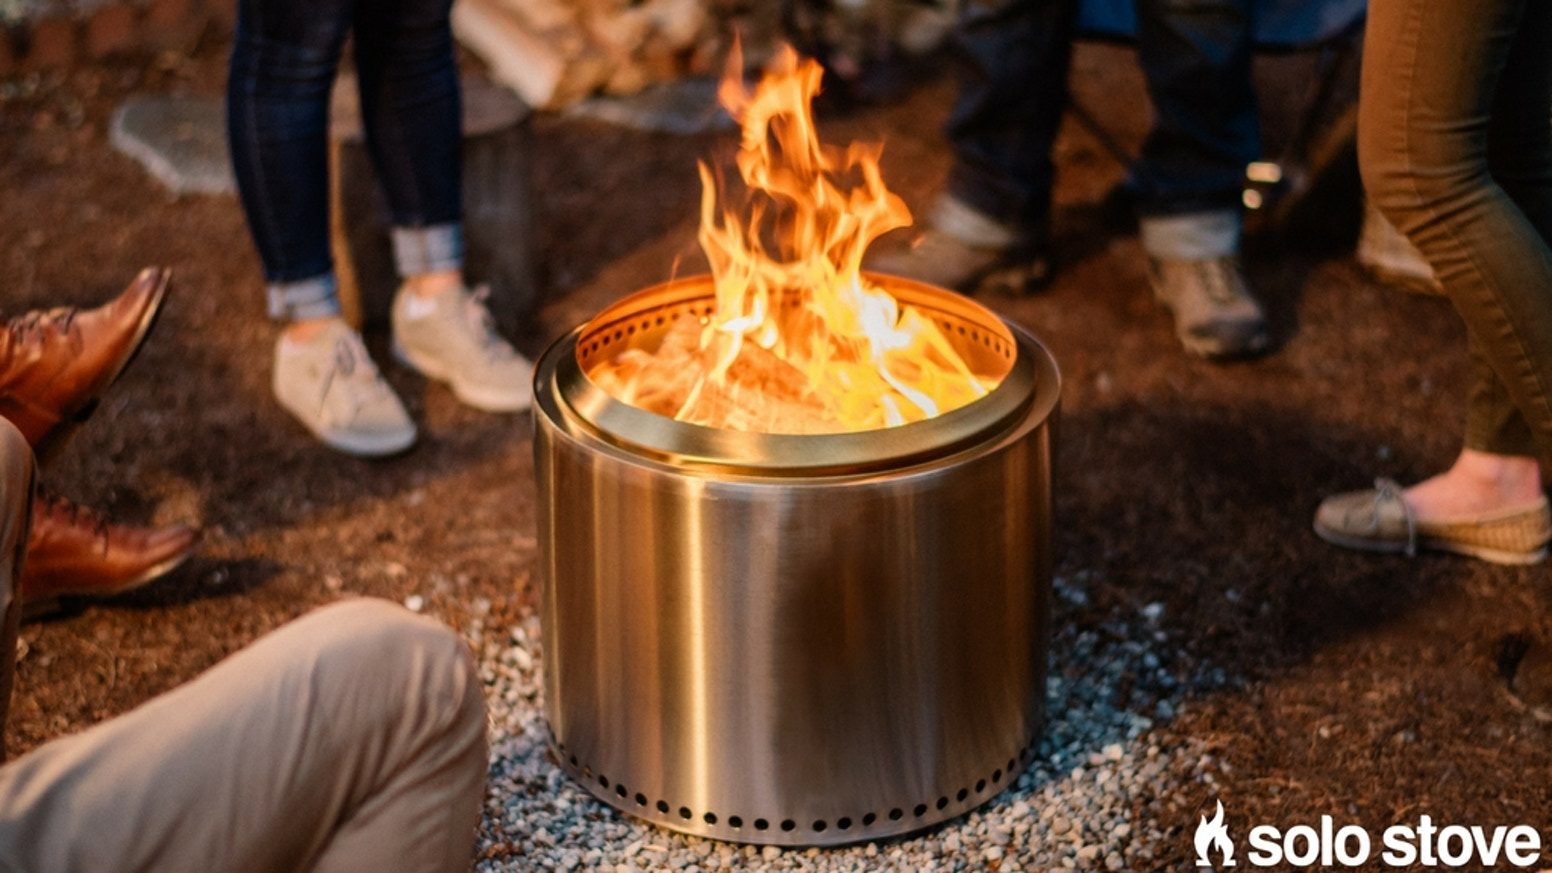 We are bringing family and friends together around the world's most beautiful, efficient and unique fire pit.